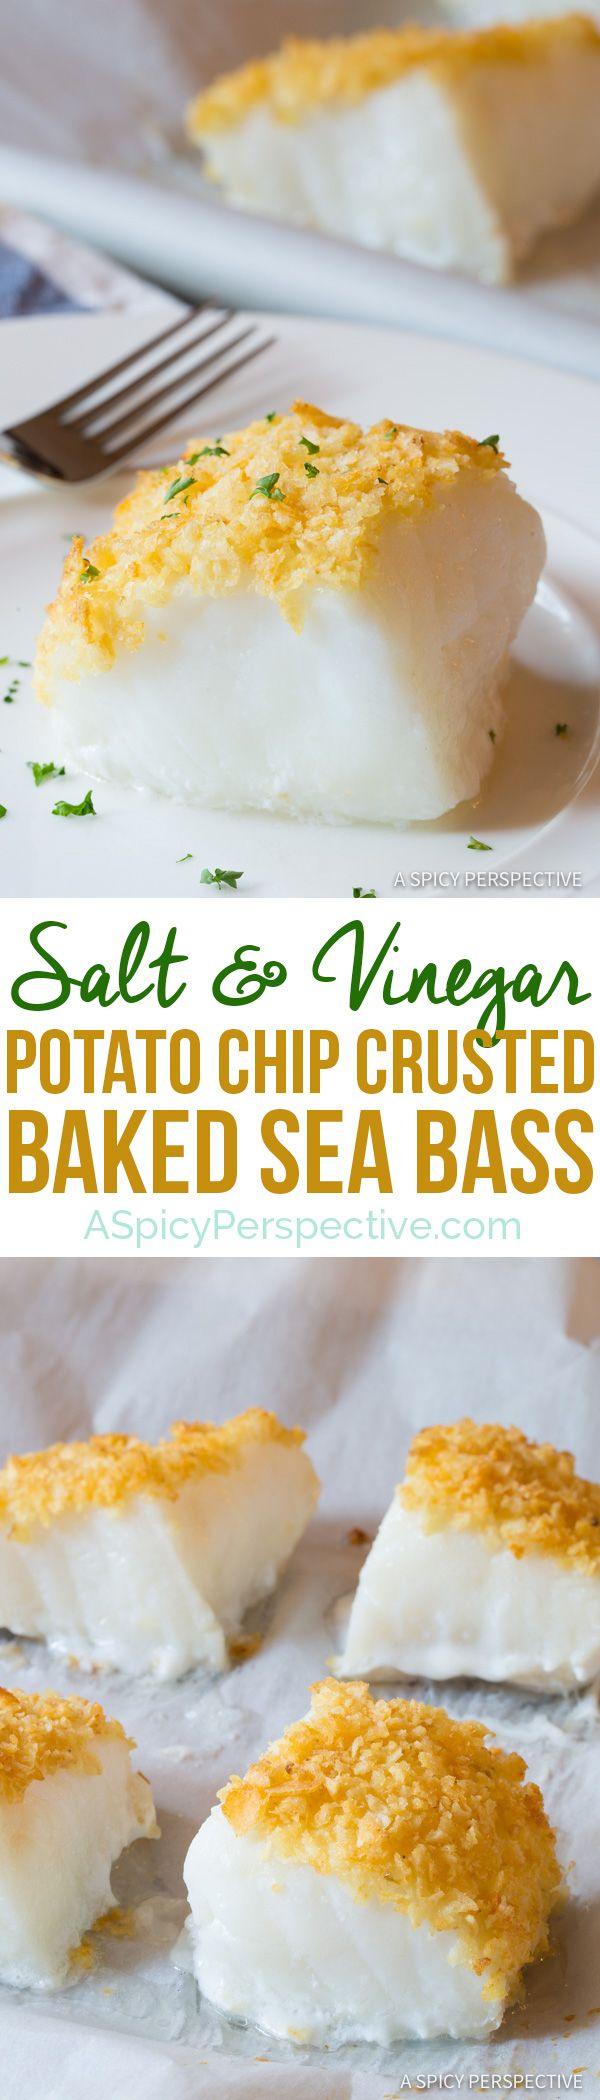 3-Ingredient Salt and Vinegar Potato Chip Crusted Baked Sea Bass Recipe | ASpicyPerspective.com via @spicyperspectiv